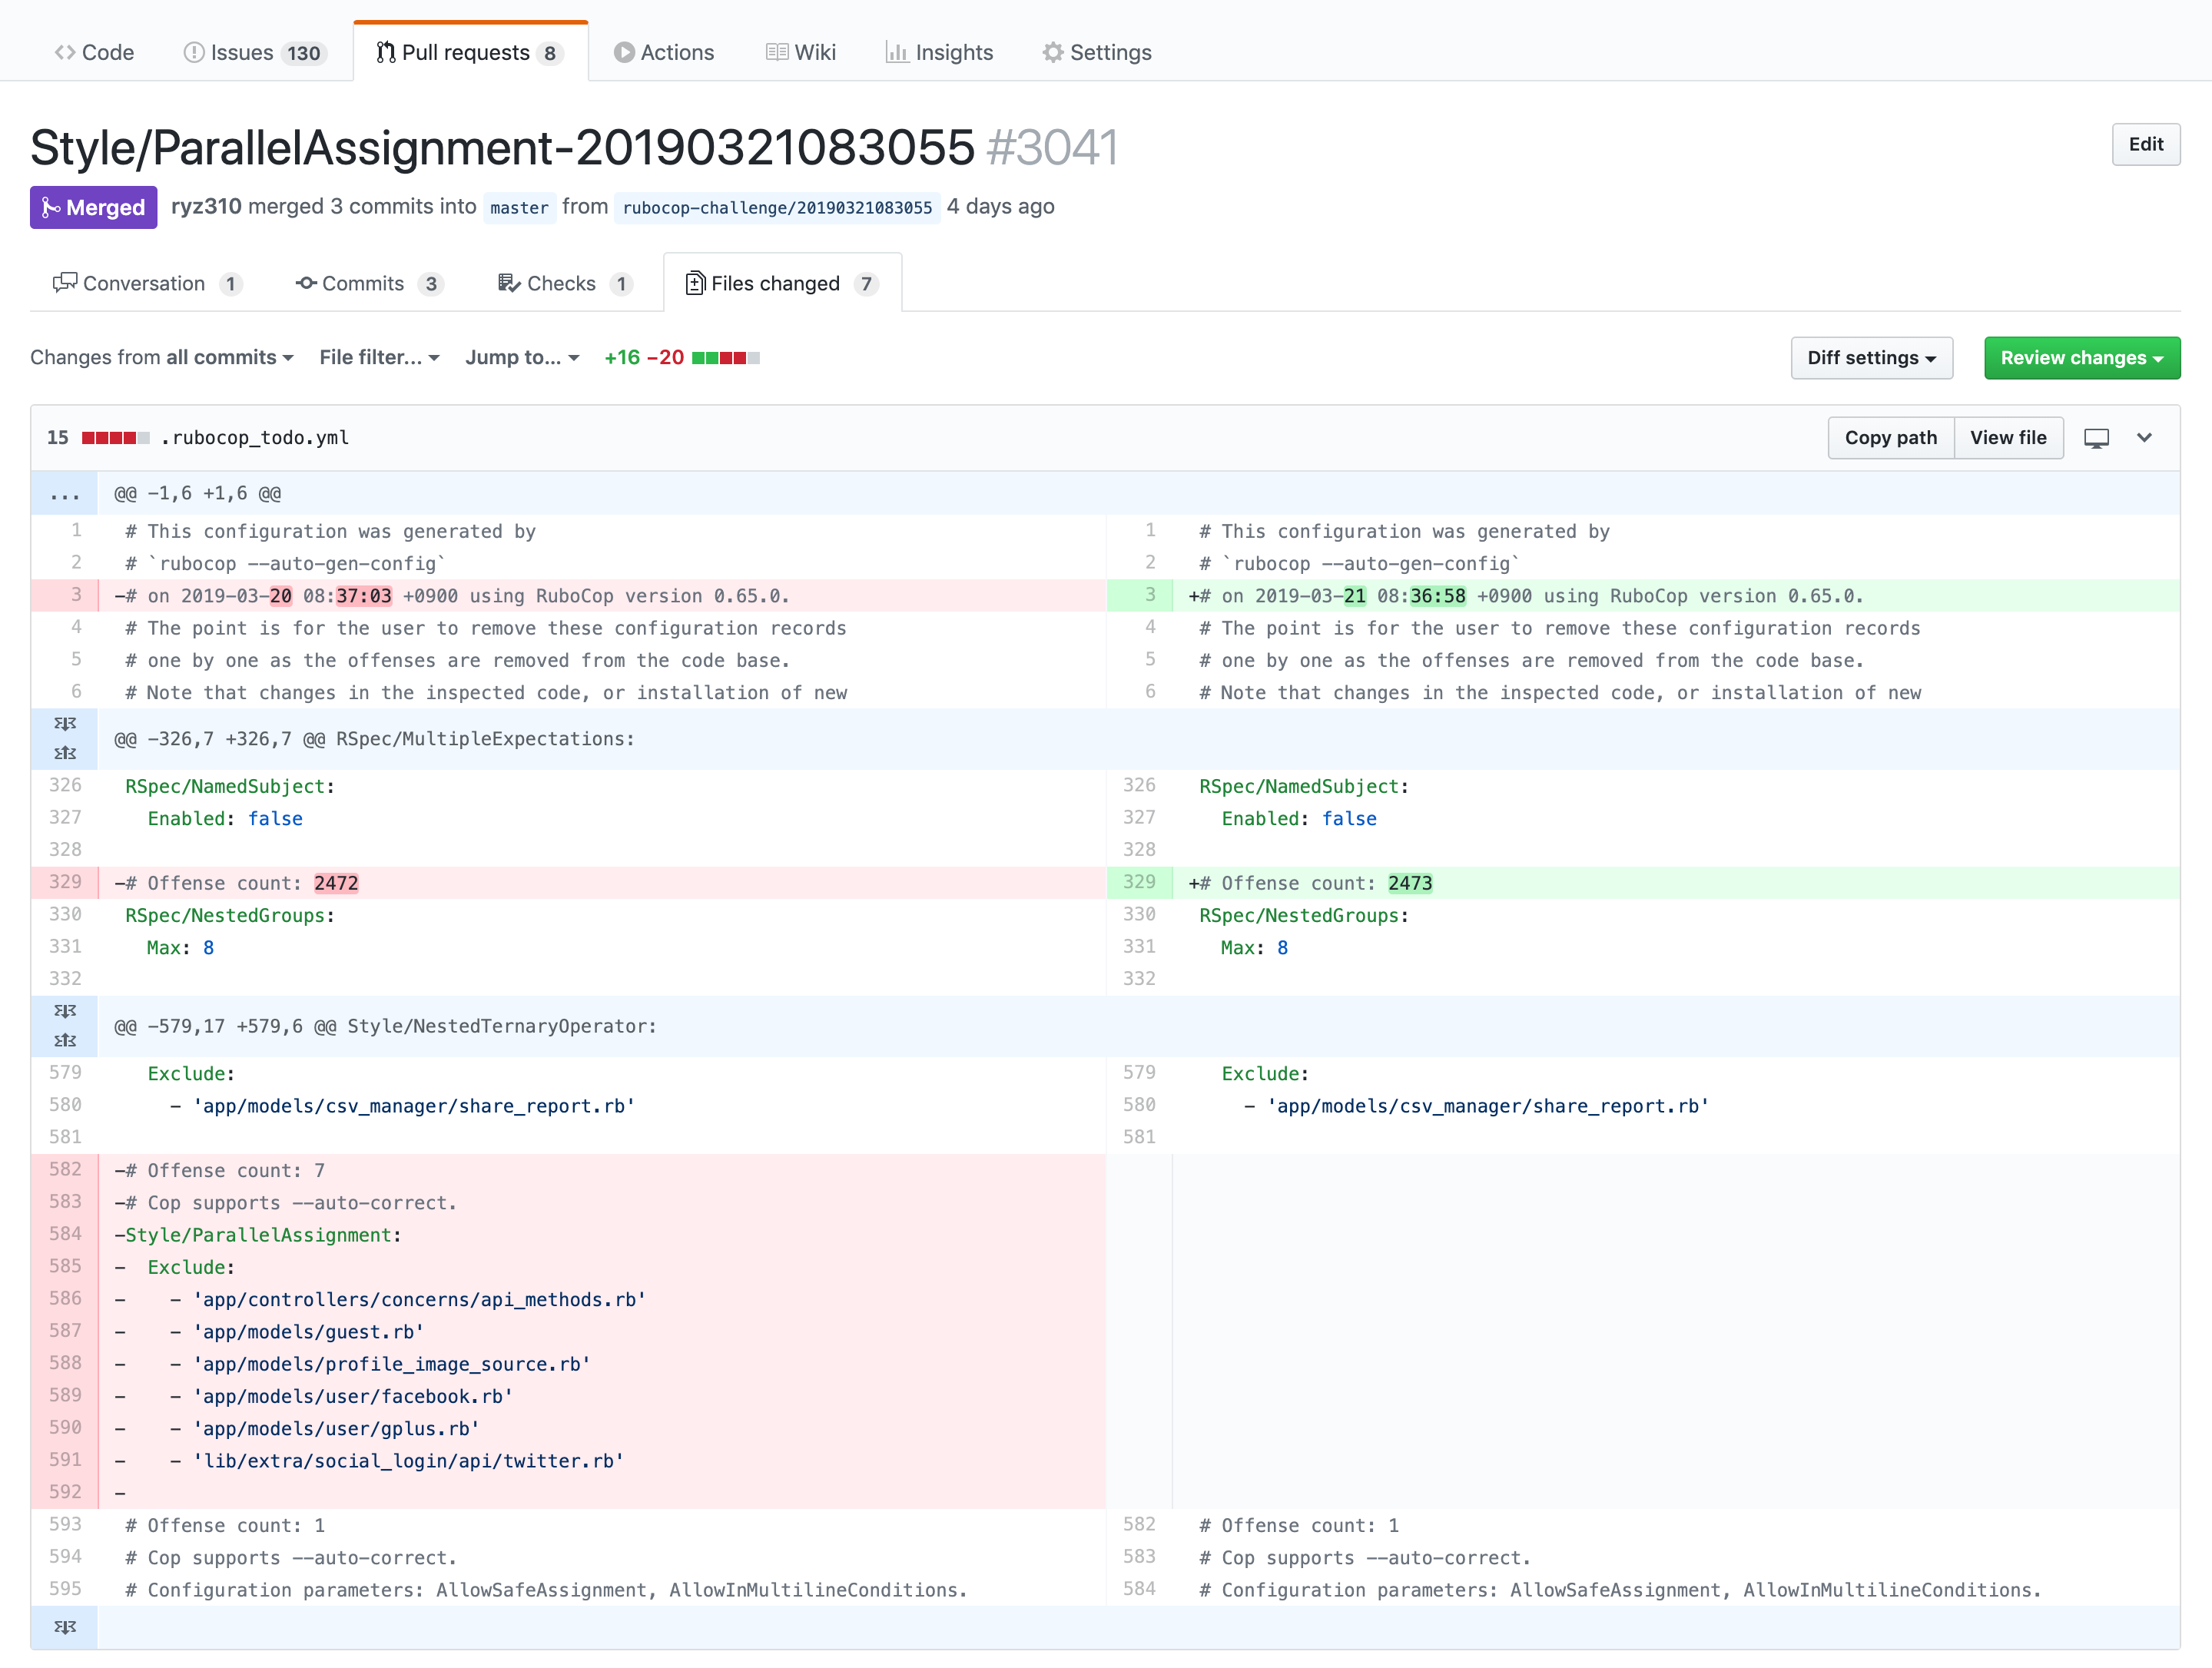 FireShot Capture 002 - Style_ParallelAssignment-20190321083055 by social-plus-devel · Pull R_ - github.com.png